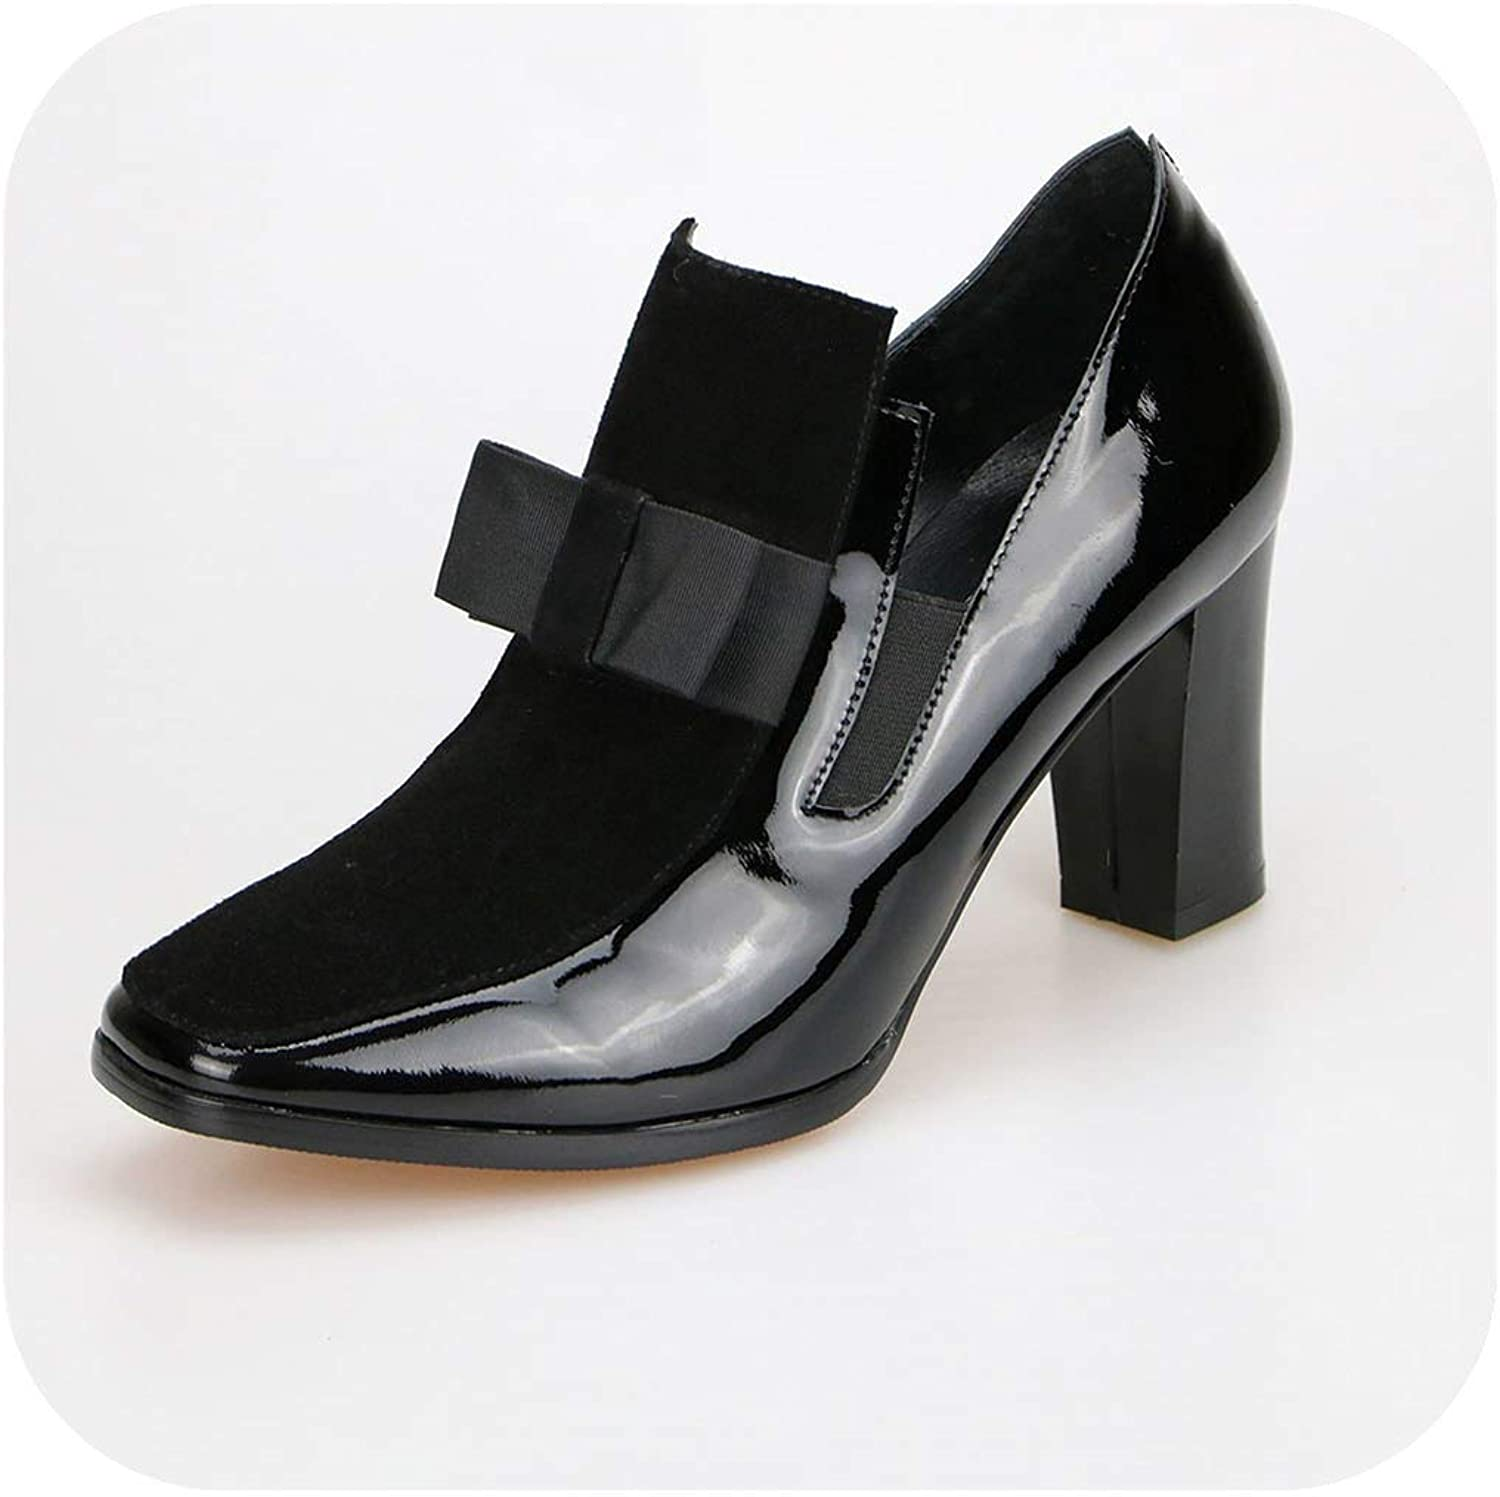 New 100% Real Photo High Heels Pumps Square Toe Genuine Leather shoes Black Sexy